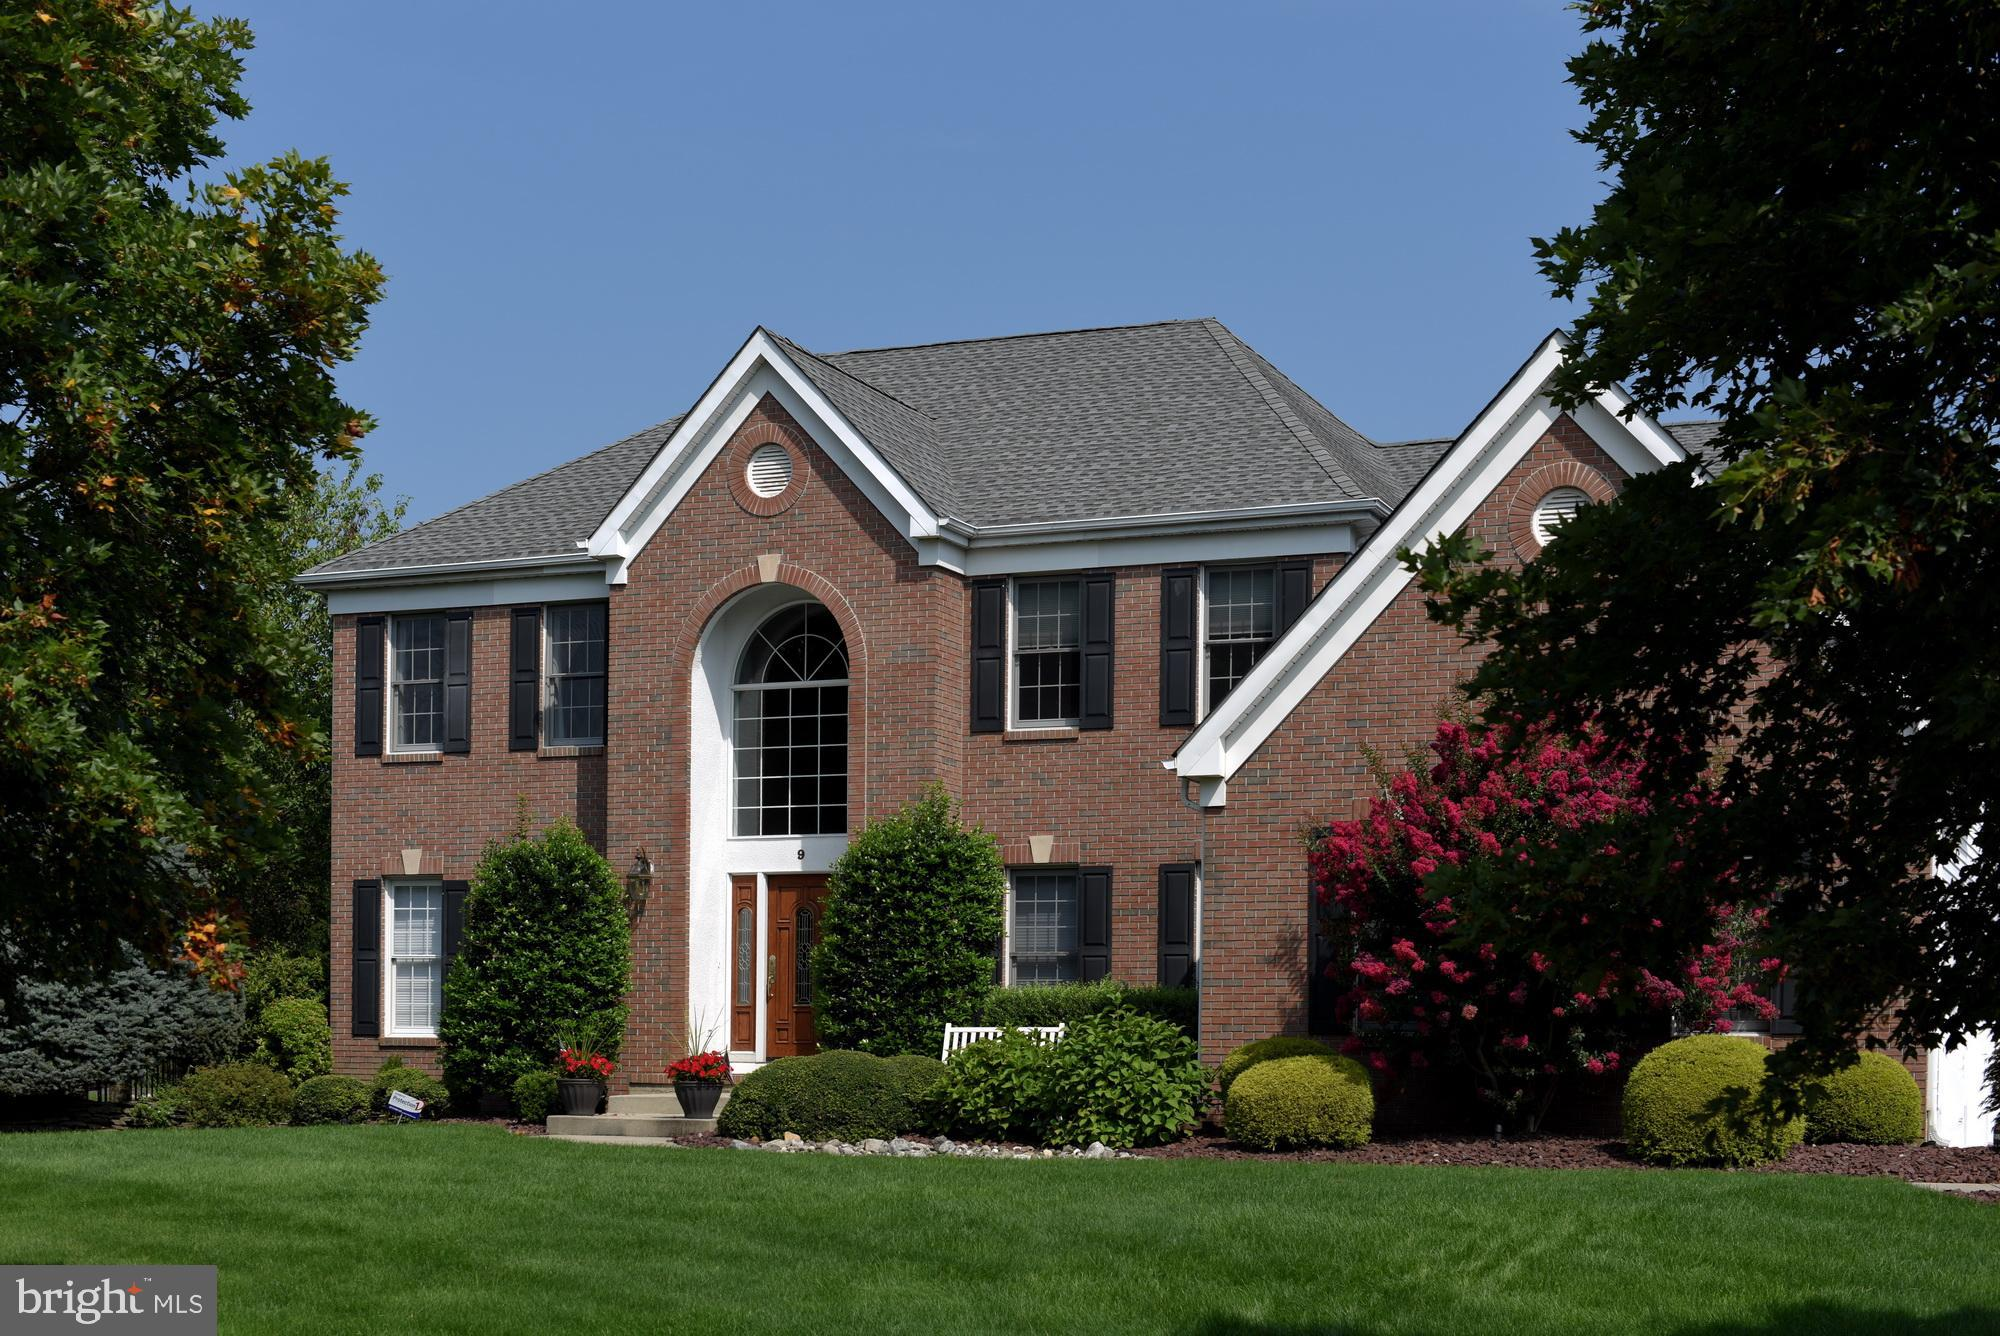 9 HIGHPOINT PLACE, PRINCETON JUNCTION, NJ 08550